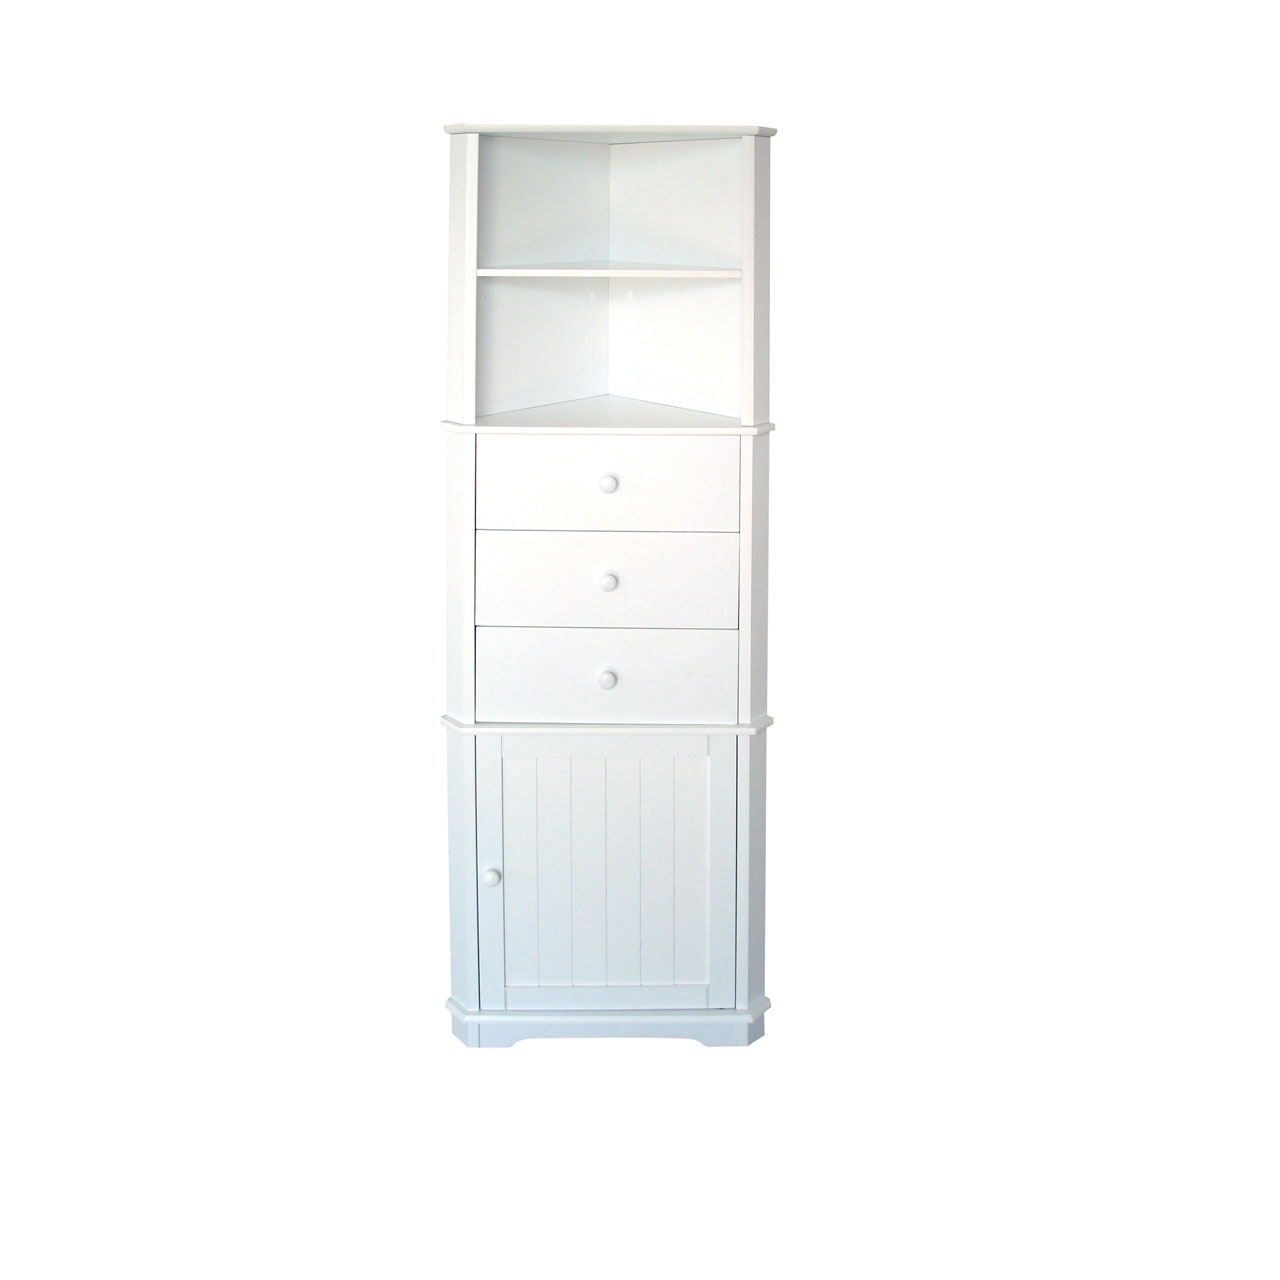 White Wood Bathroom Kitchen Corner Unit Cupboard Drawers Shelves Storage Ebay